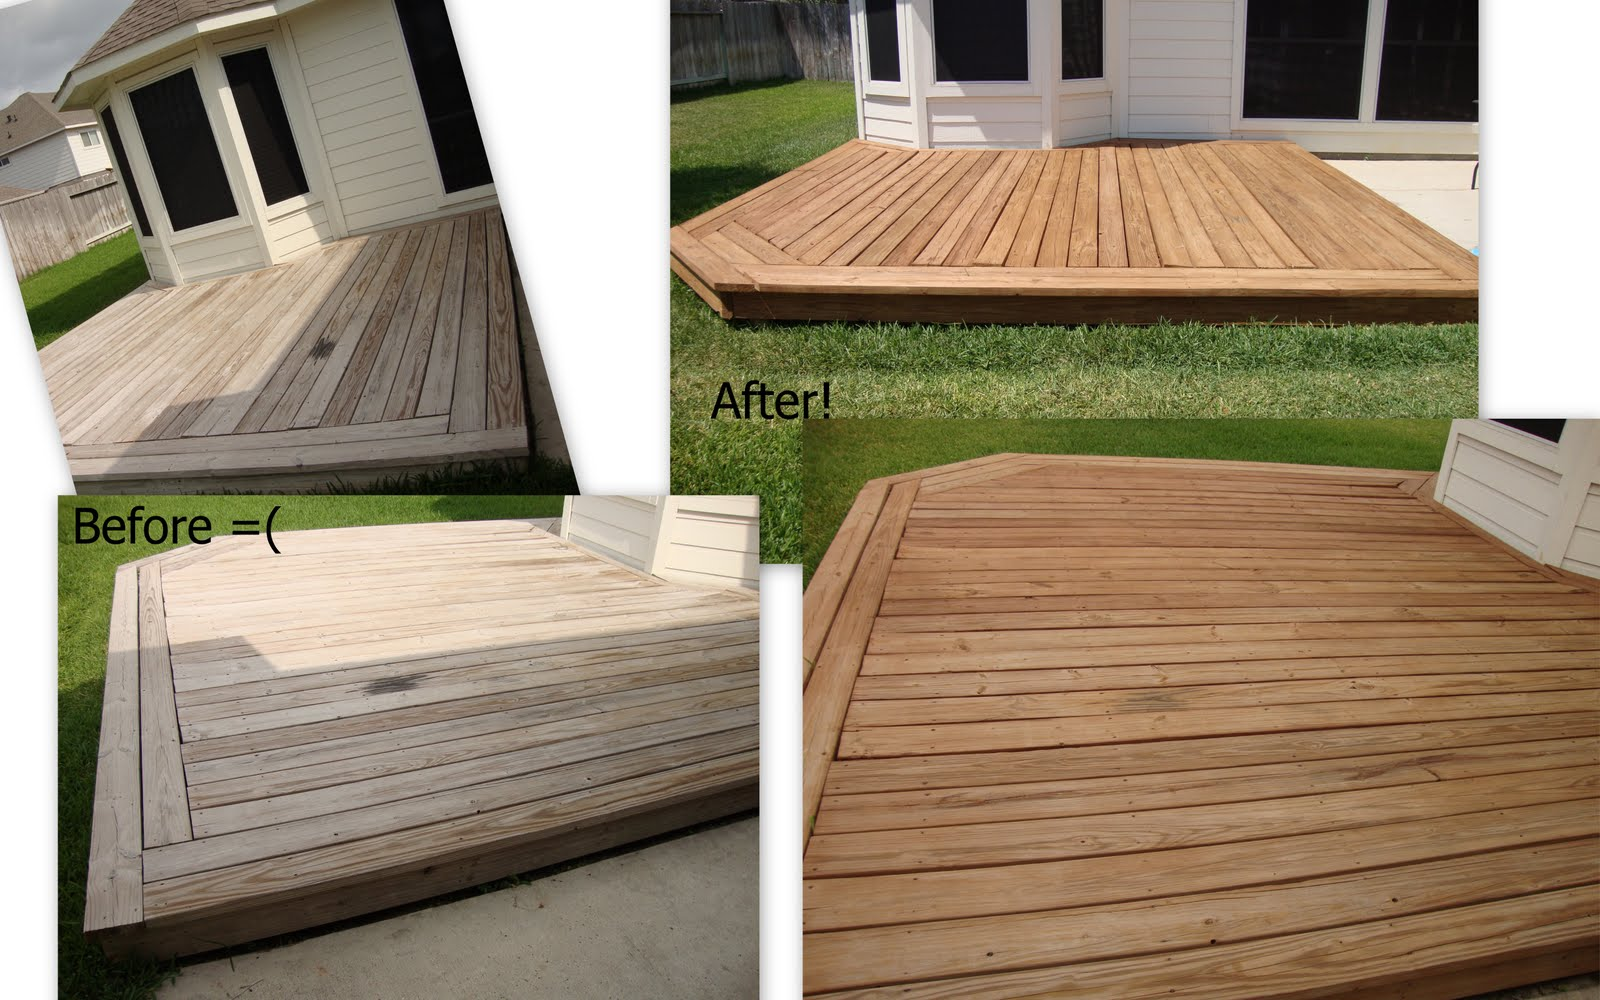 Lady Kay's Kitchen: Eco-Friendly Non-Toxic Deck Stain: TimberSoy ...